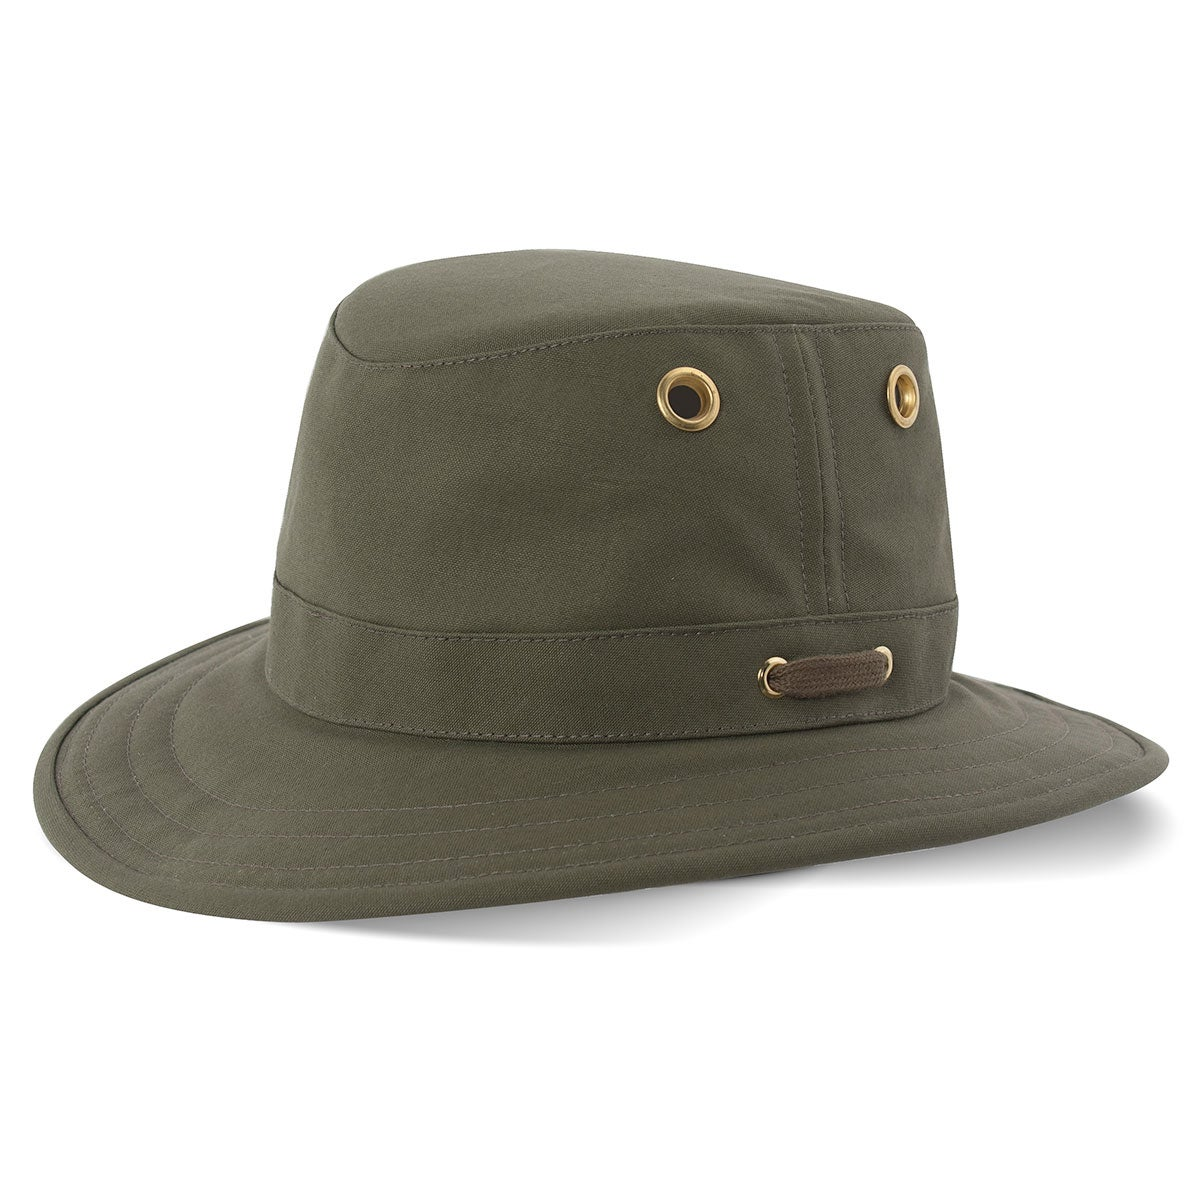 Tilley Cotton Duck Outback in Olive